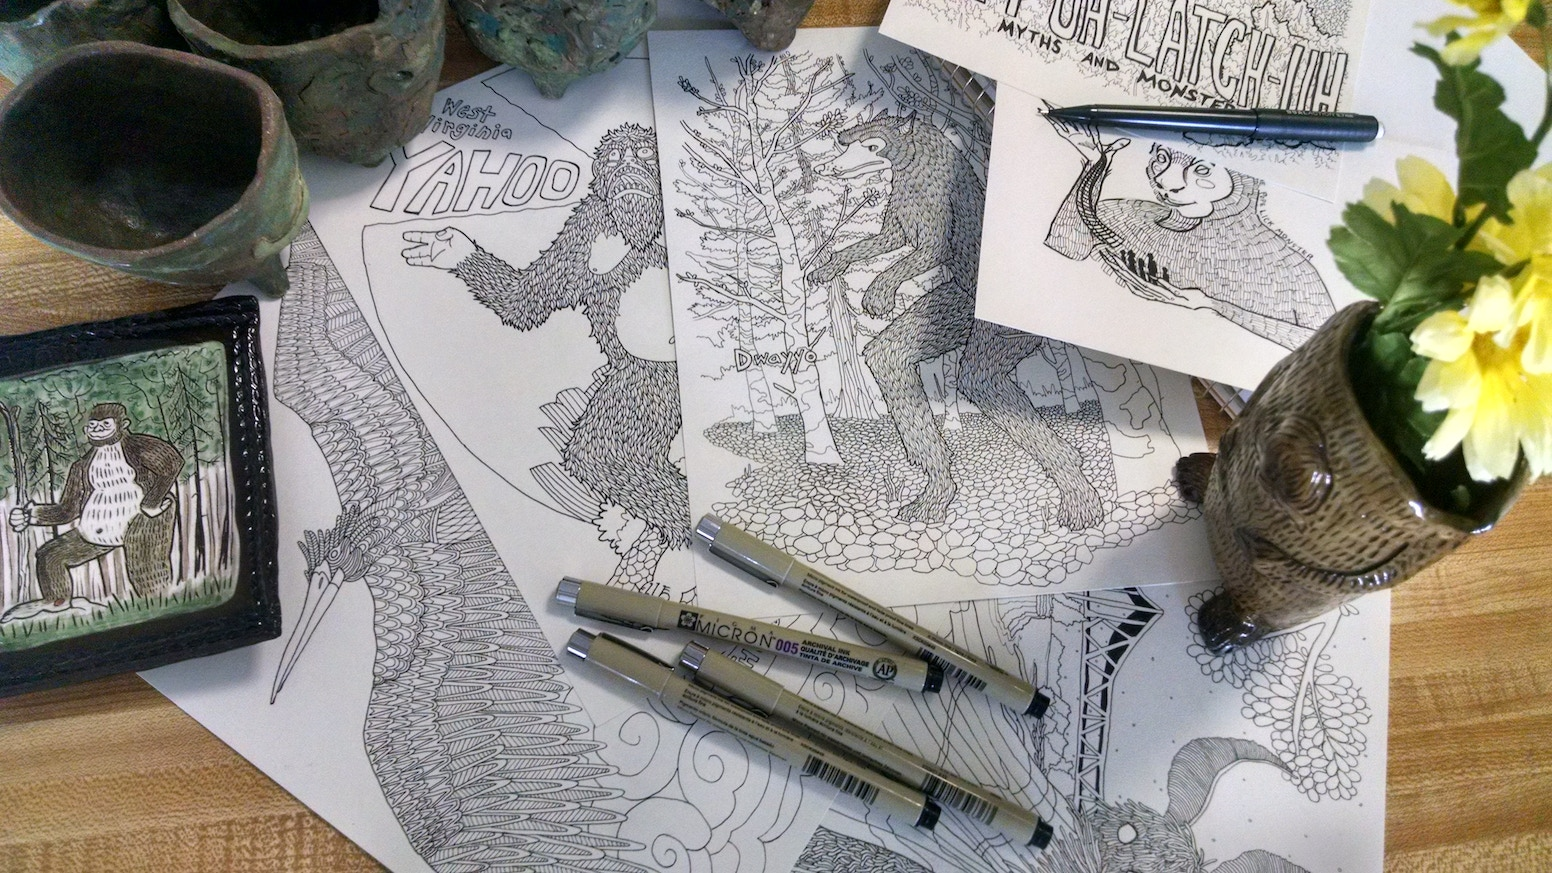 a detailed coloring book full of monsters aliens and other strange appalachian cryptids